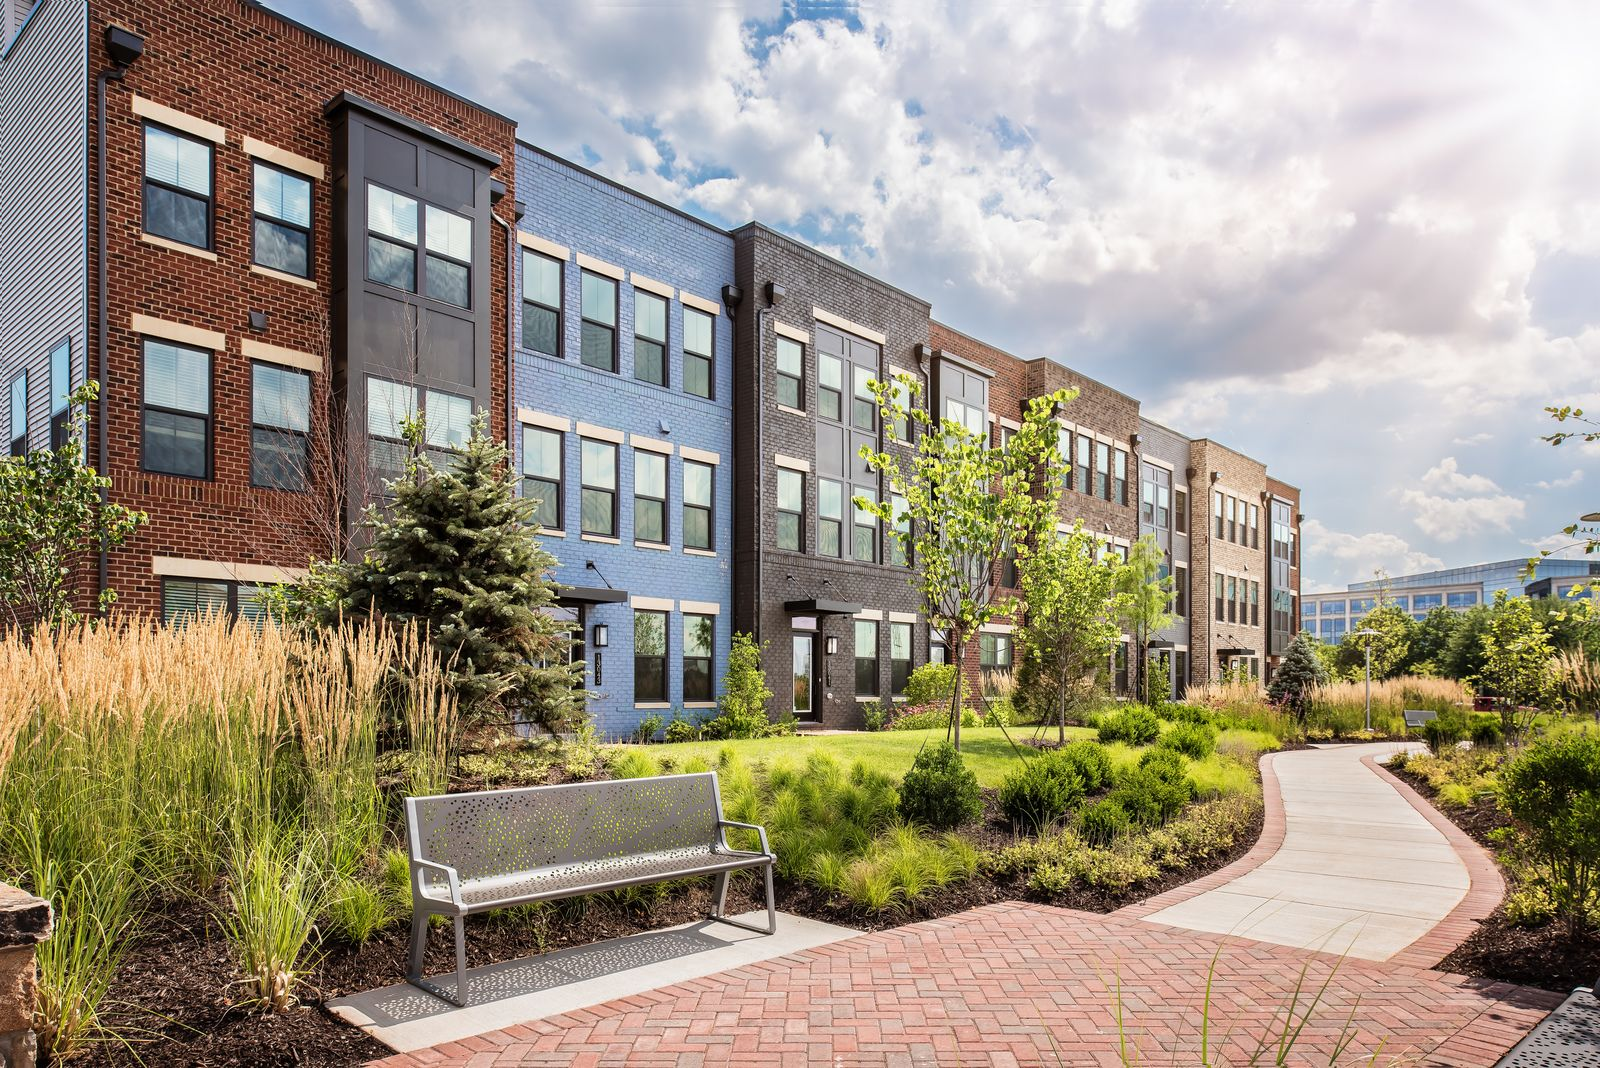 WELCOME HOME TO WALKABLE LIVING NEAR RESTON:Enjoy the best of city living in a lush, amenity-rich setting at Woodland Park Station, our new community of townhomes on Metro's Silver Line.Learn more by scheduling a visit today!